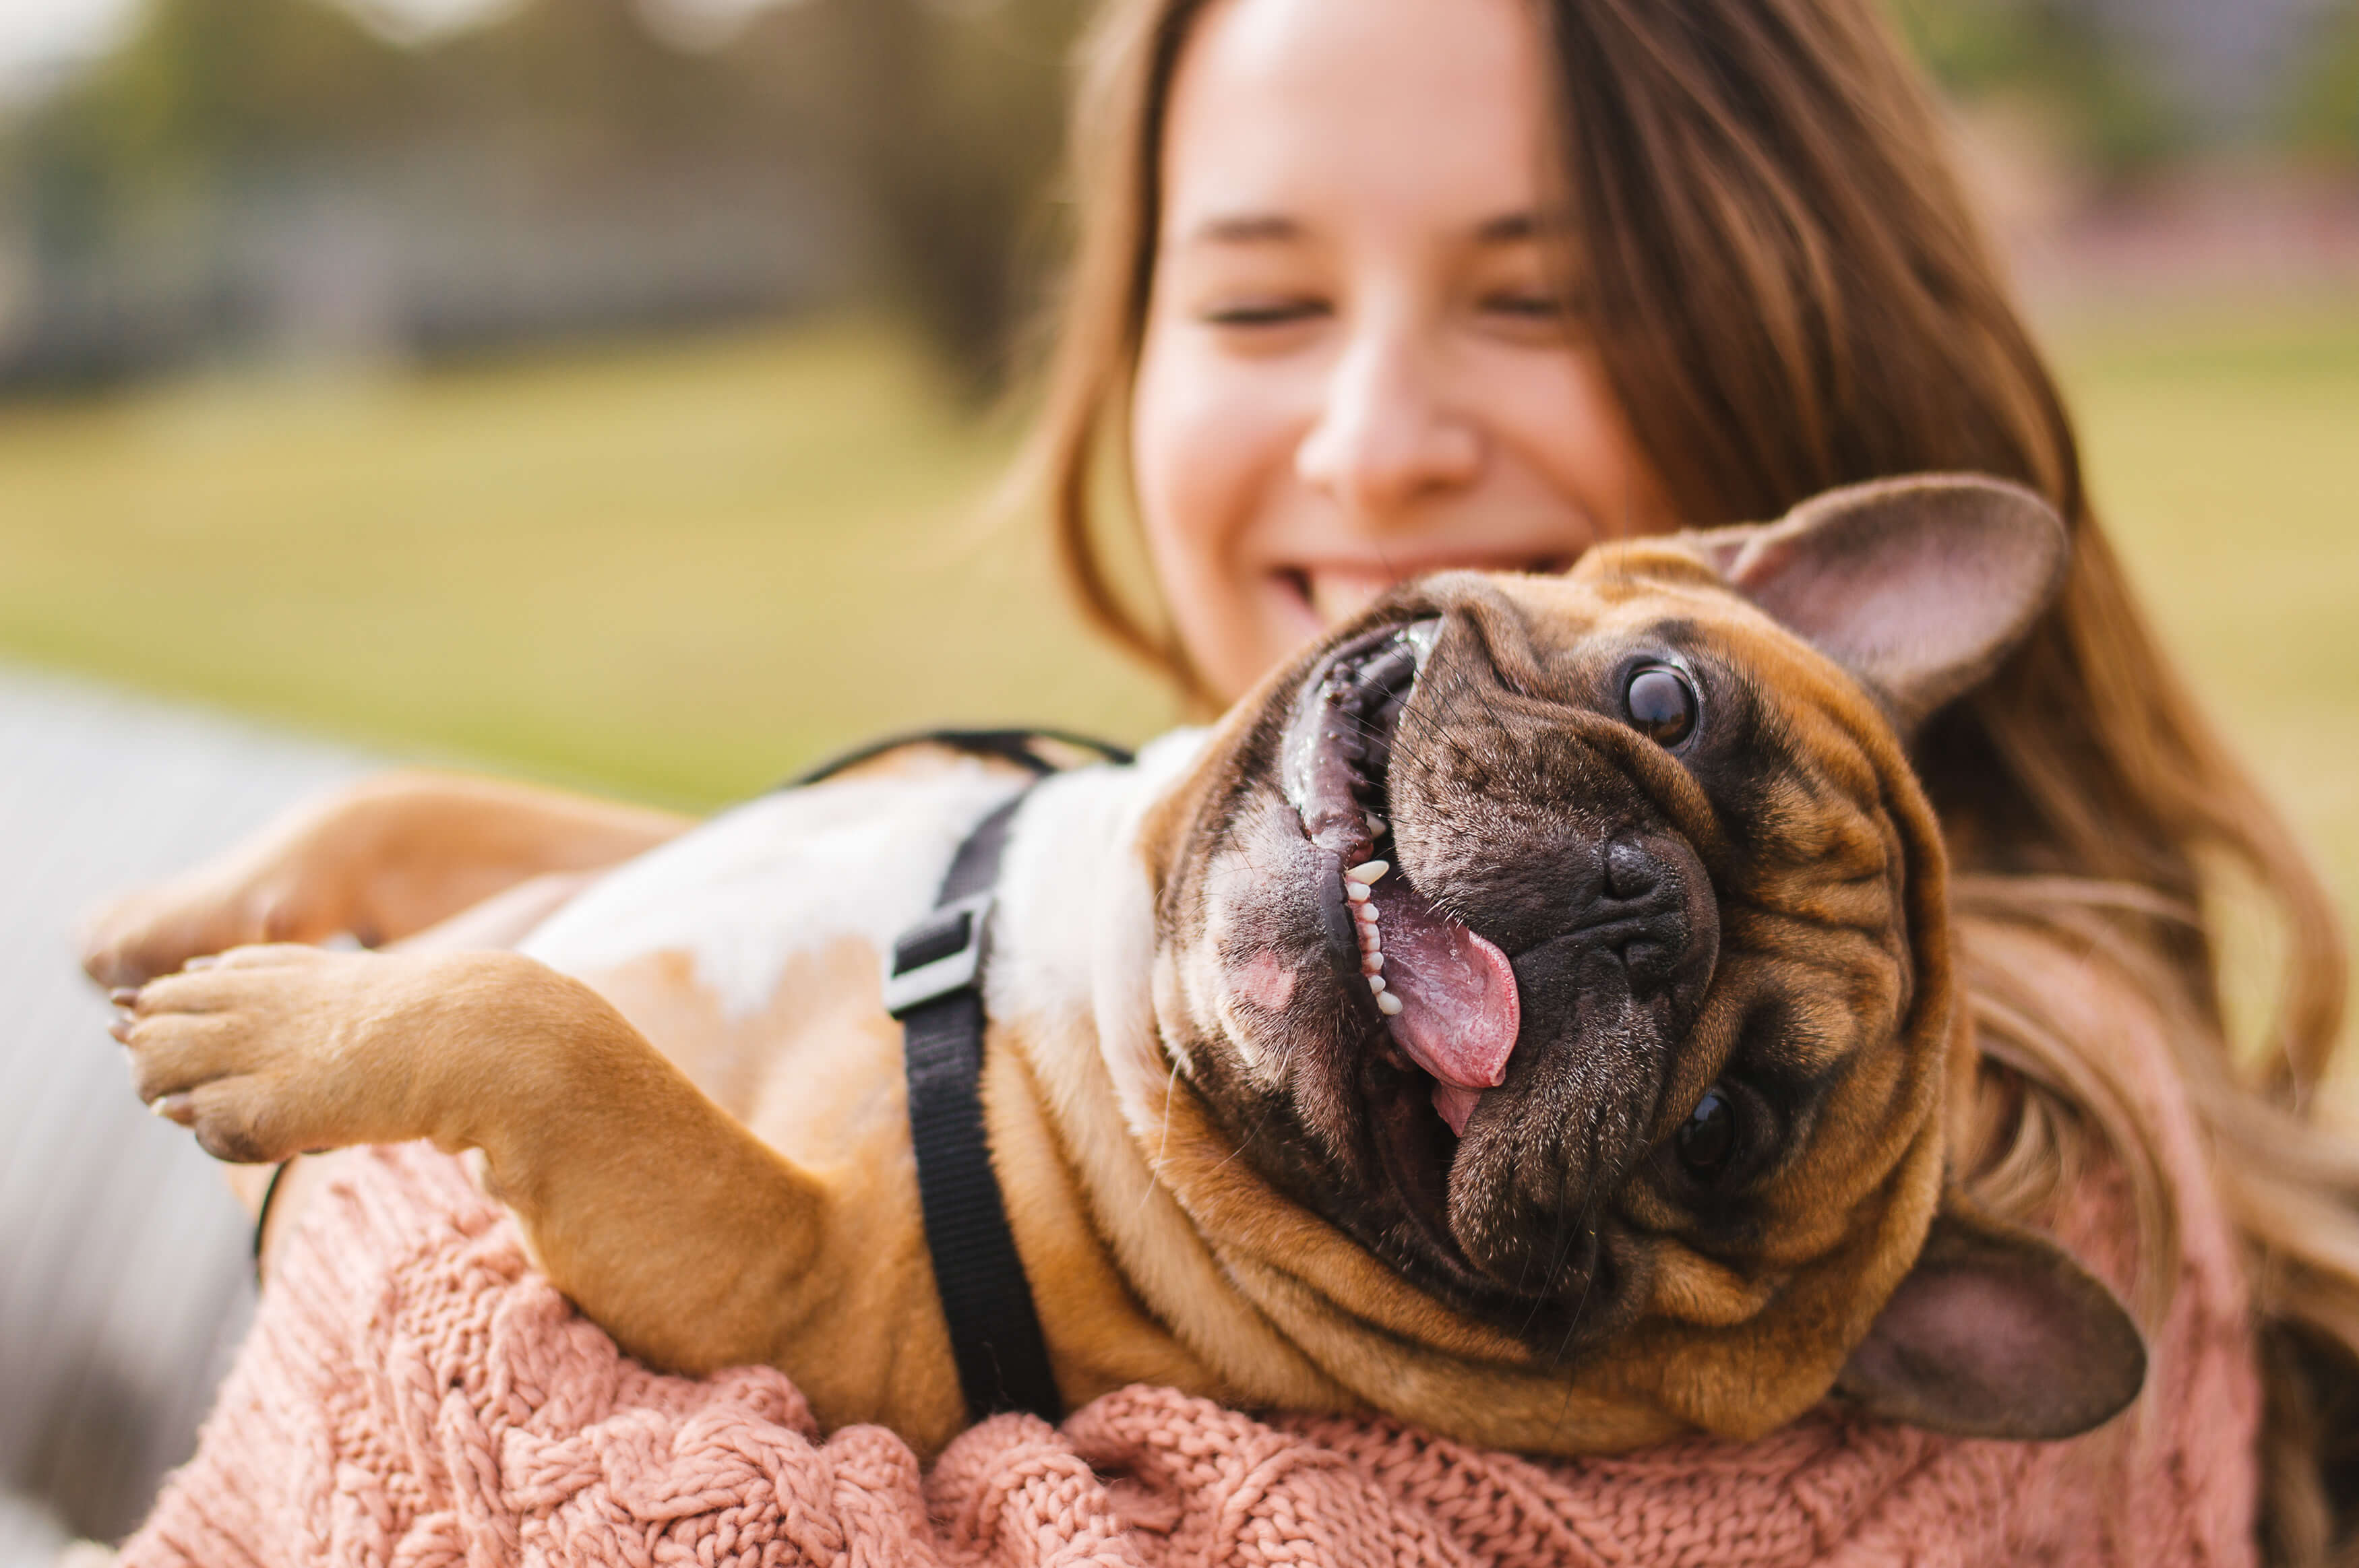 CBD for dogs can support mobility, support the immune system, and promote calmness.